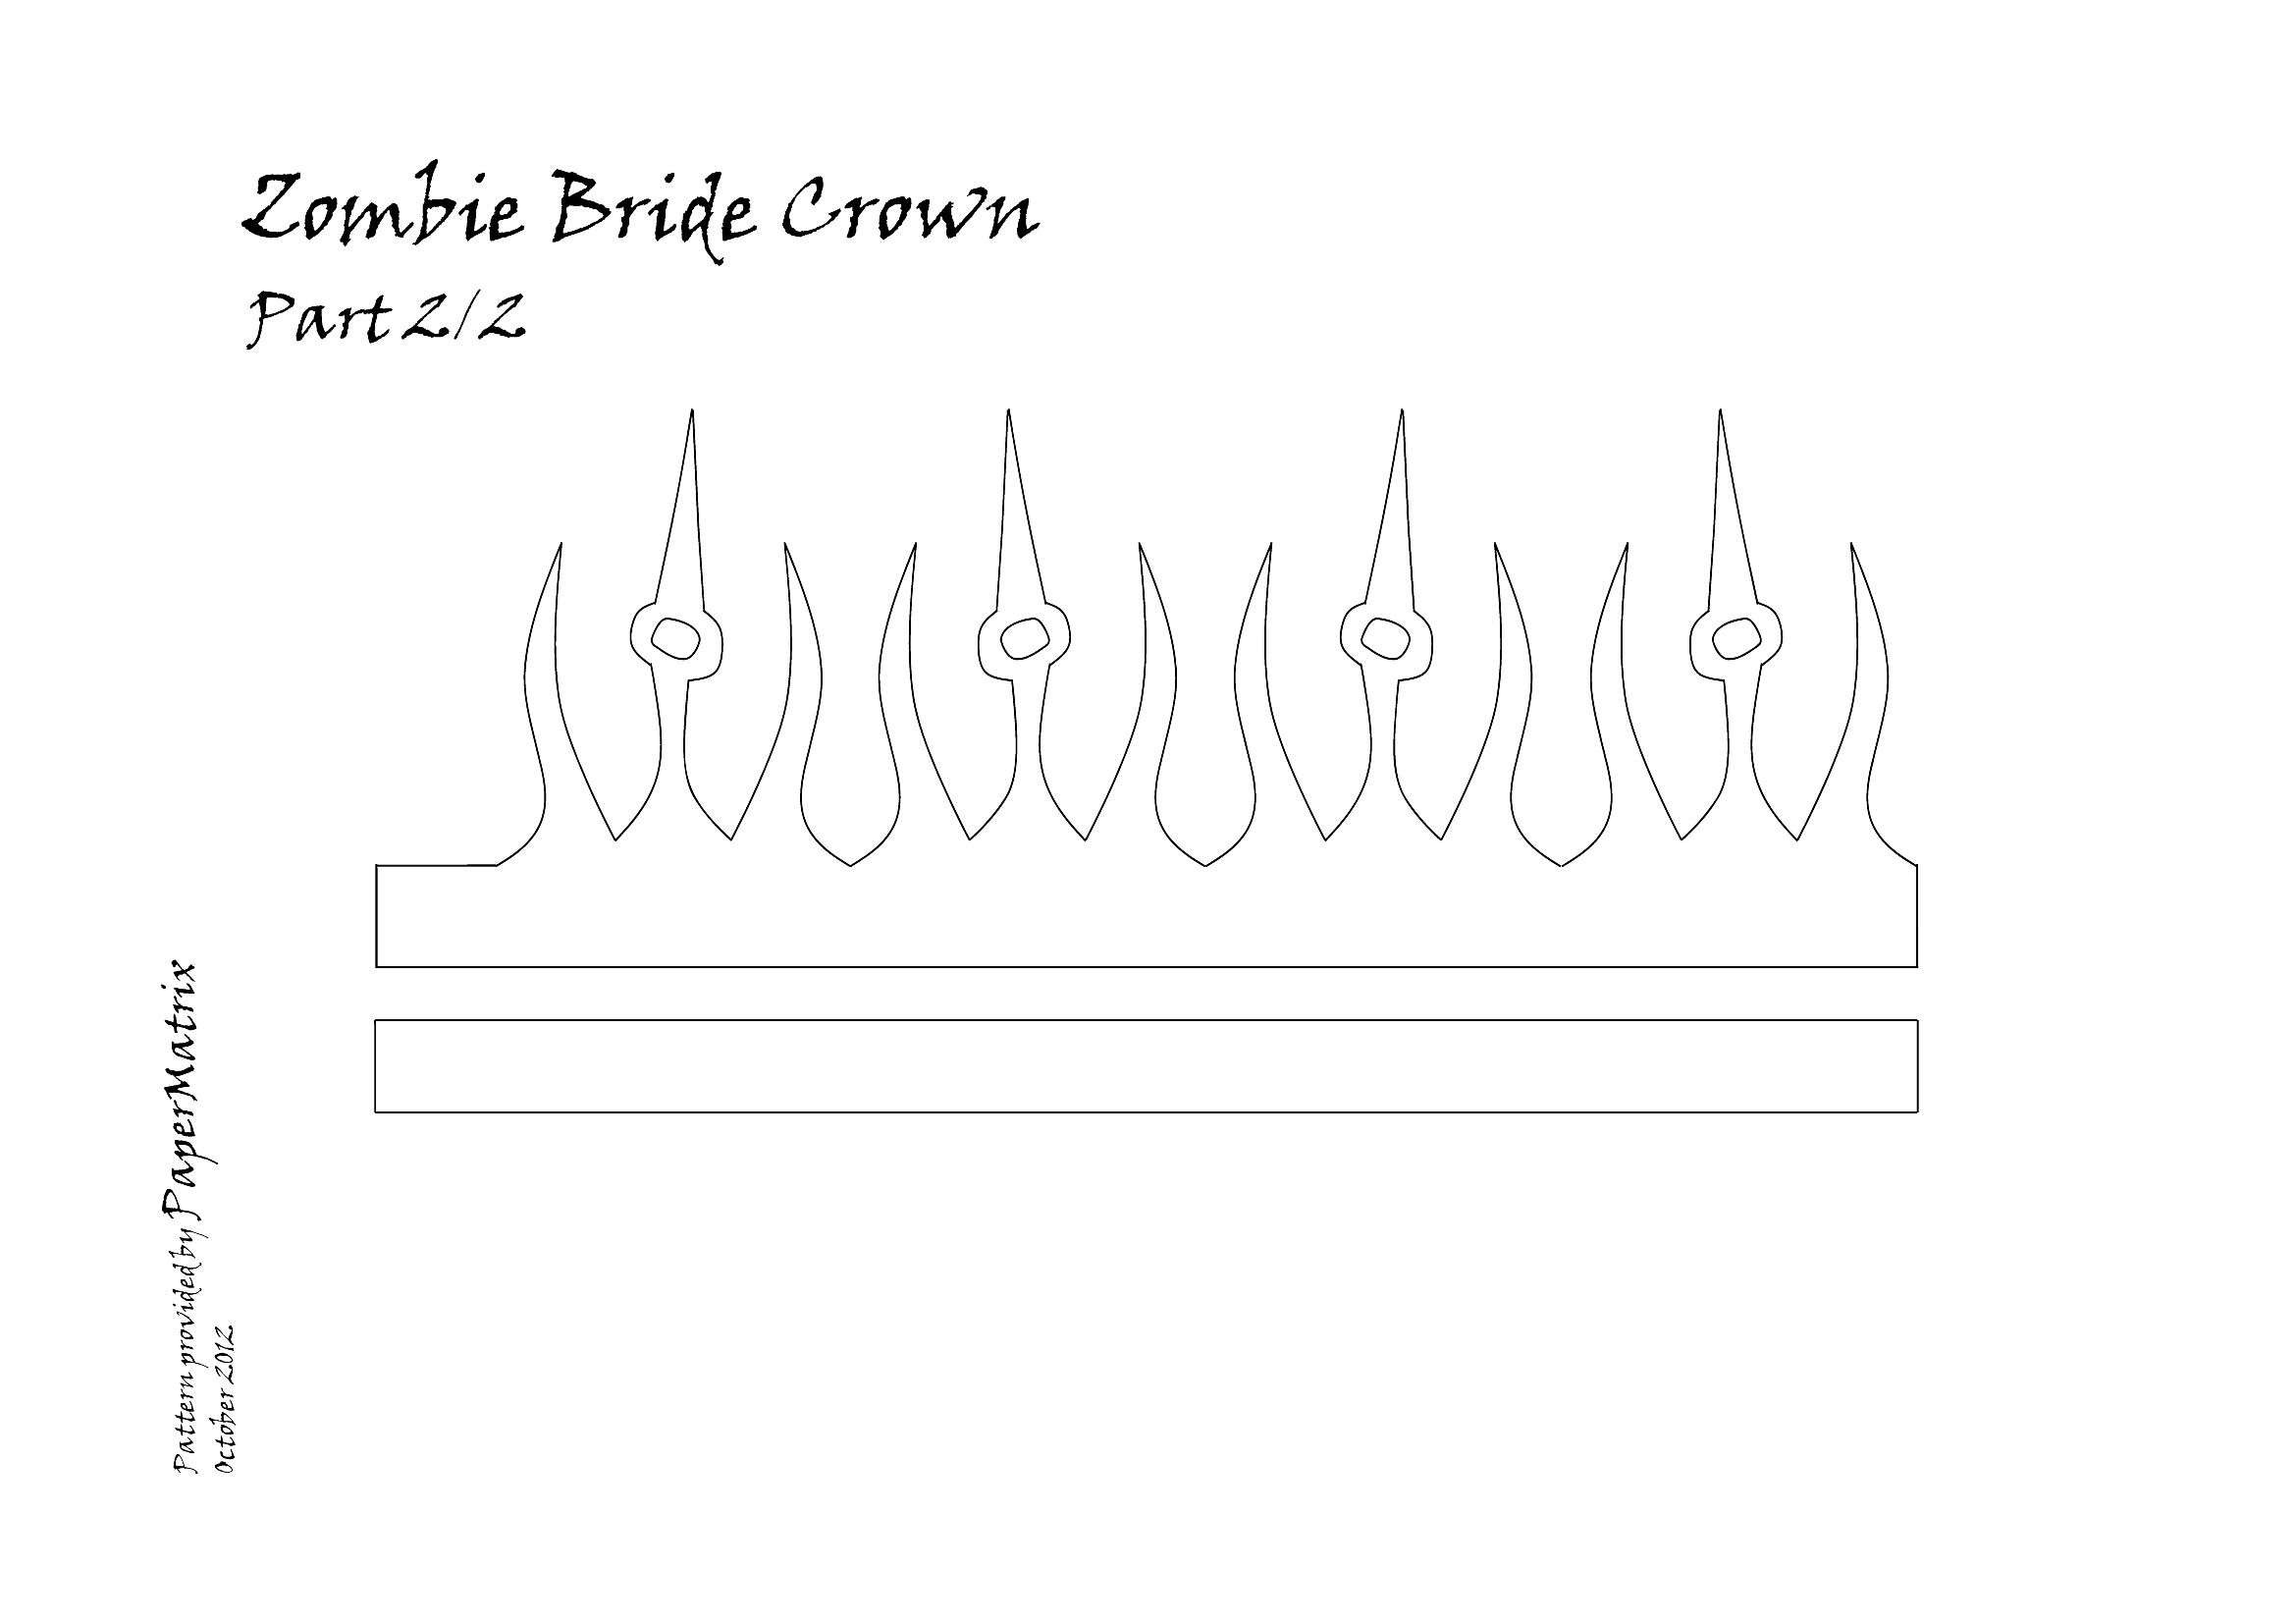 Printable Crown Template  Paper Crown Cut Out HttpPapermatrix